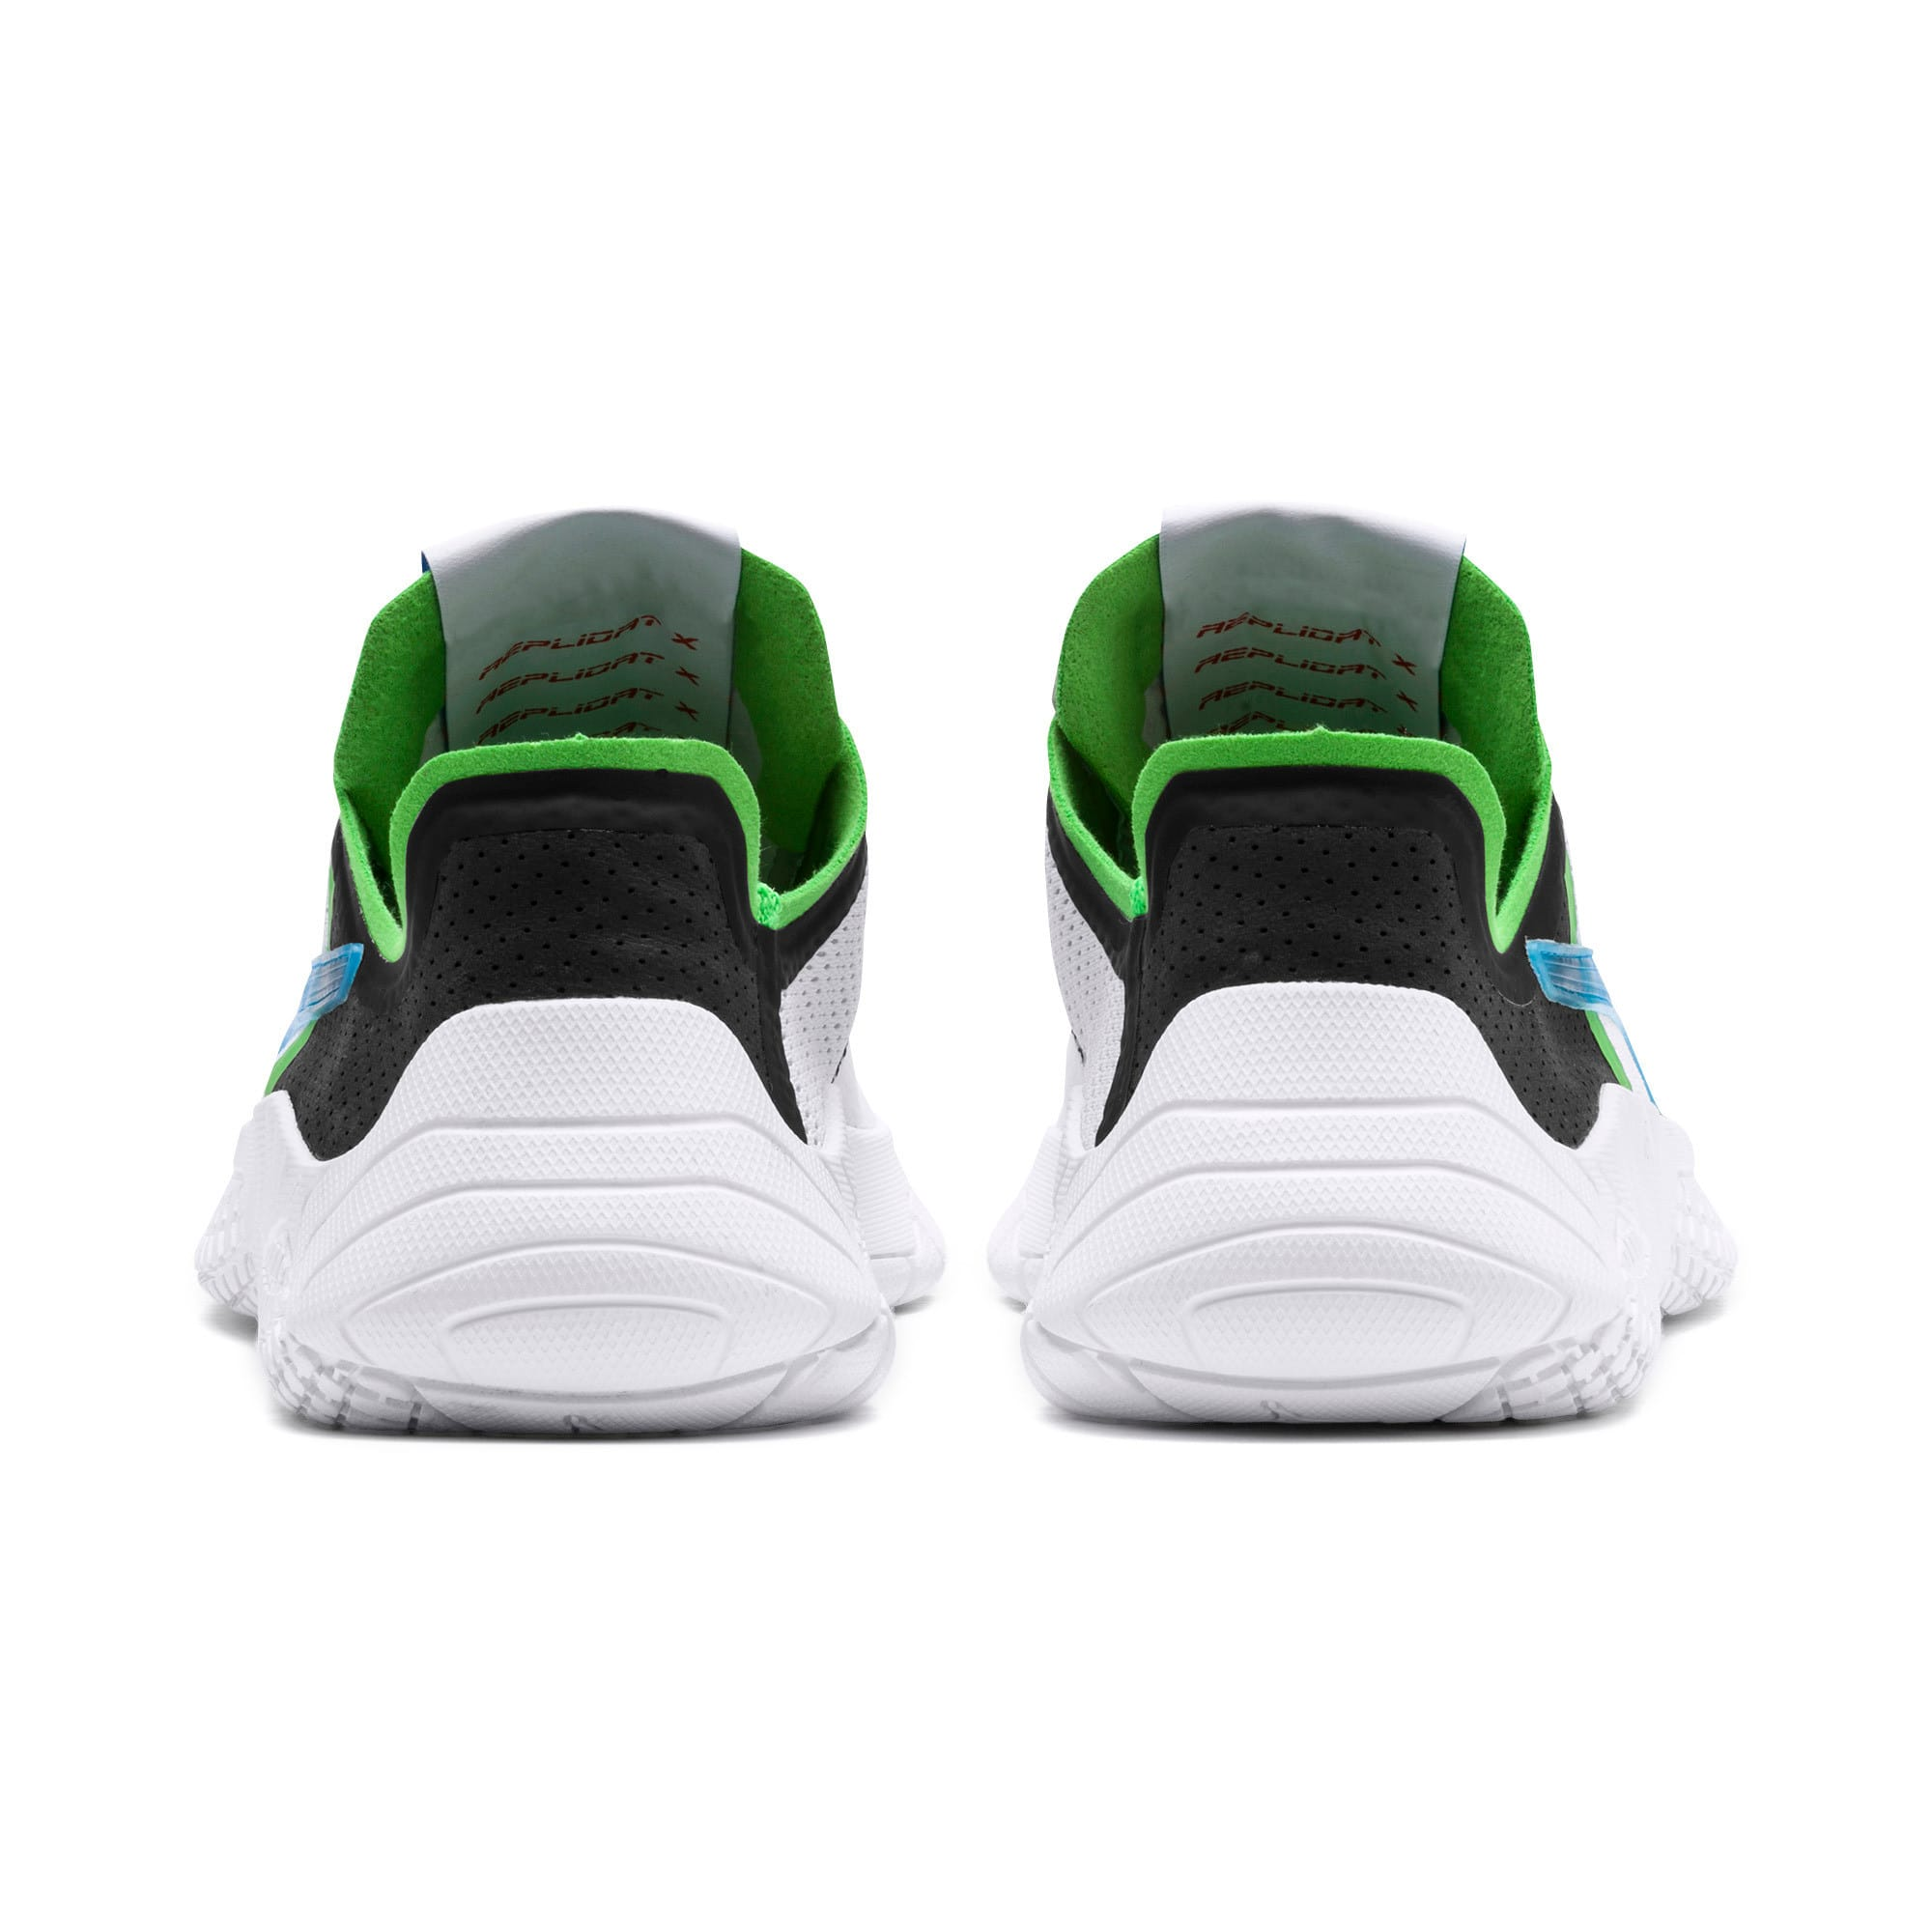 Thumbnail 4 of Replicat-X Pirelli Motorsport Shoes, White-Black-Classic Green, medium